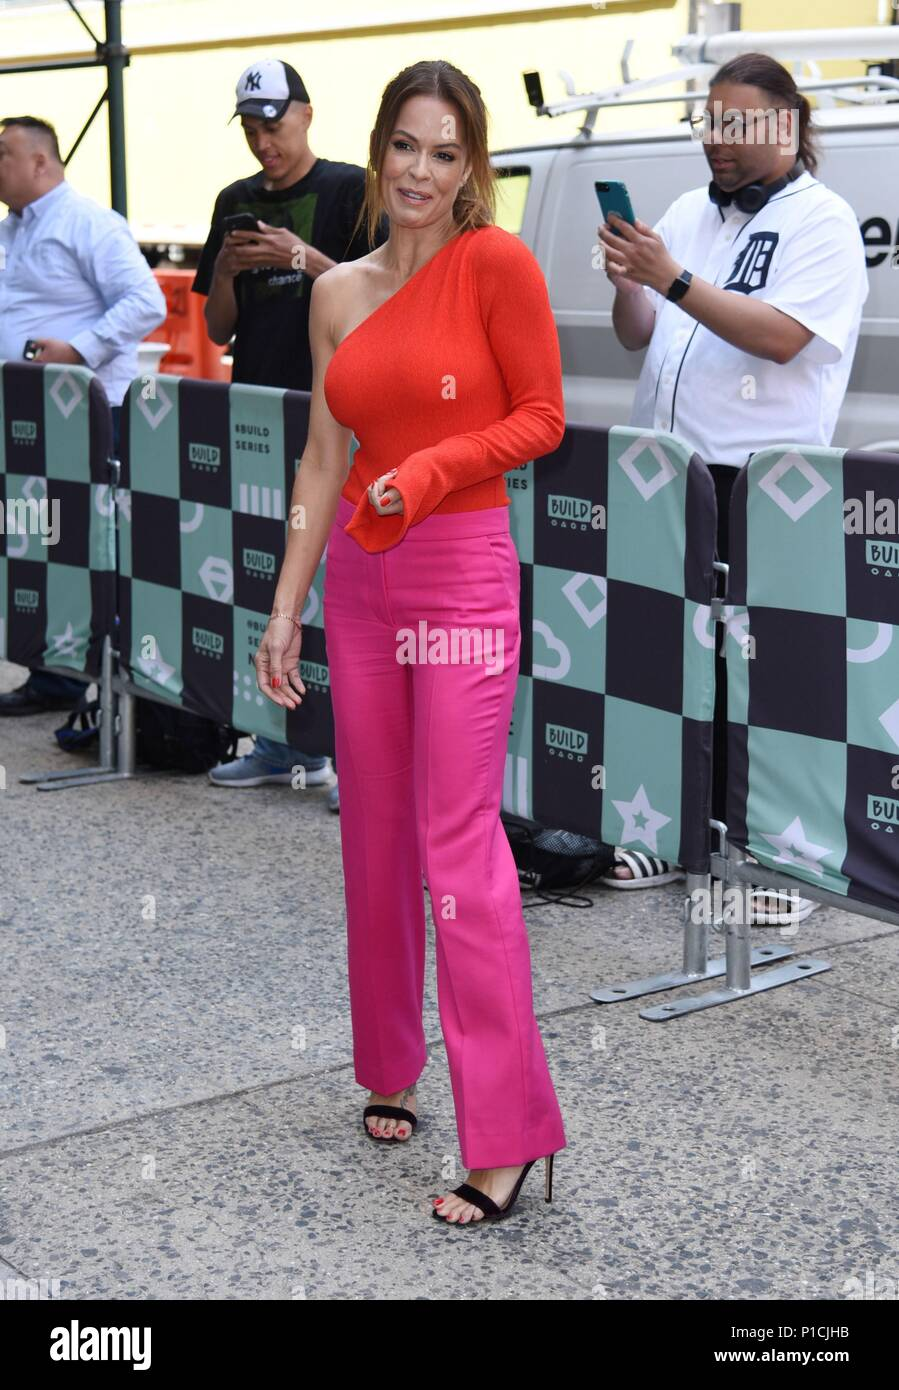 New York, NY, USA. 11 Juin, 2018. Brooke Burke, vu à construire pour promouvoir la série BOOTY BRÛLER dehors et environ pour la célébrité Candids - MON, New York, NY 11 juin 2018. Credit : Derek Storm/Everett Collection/Alamy Live News Photo Stock